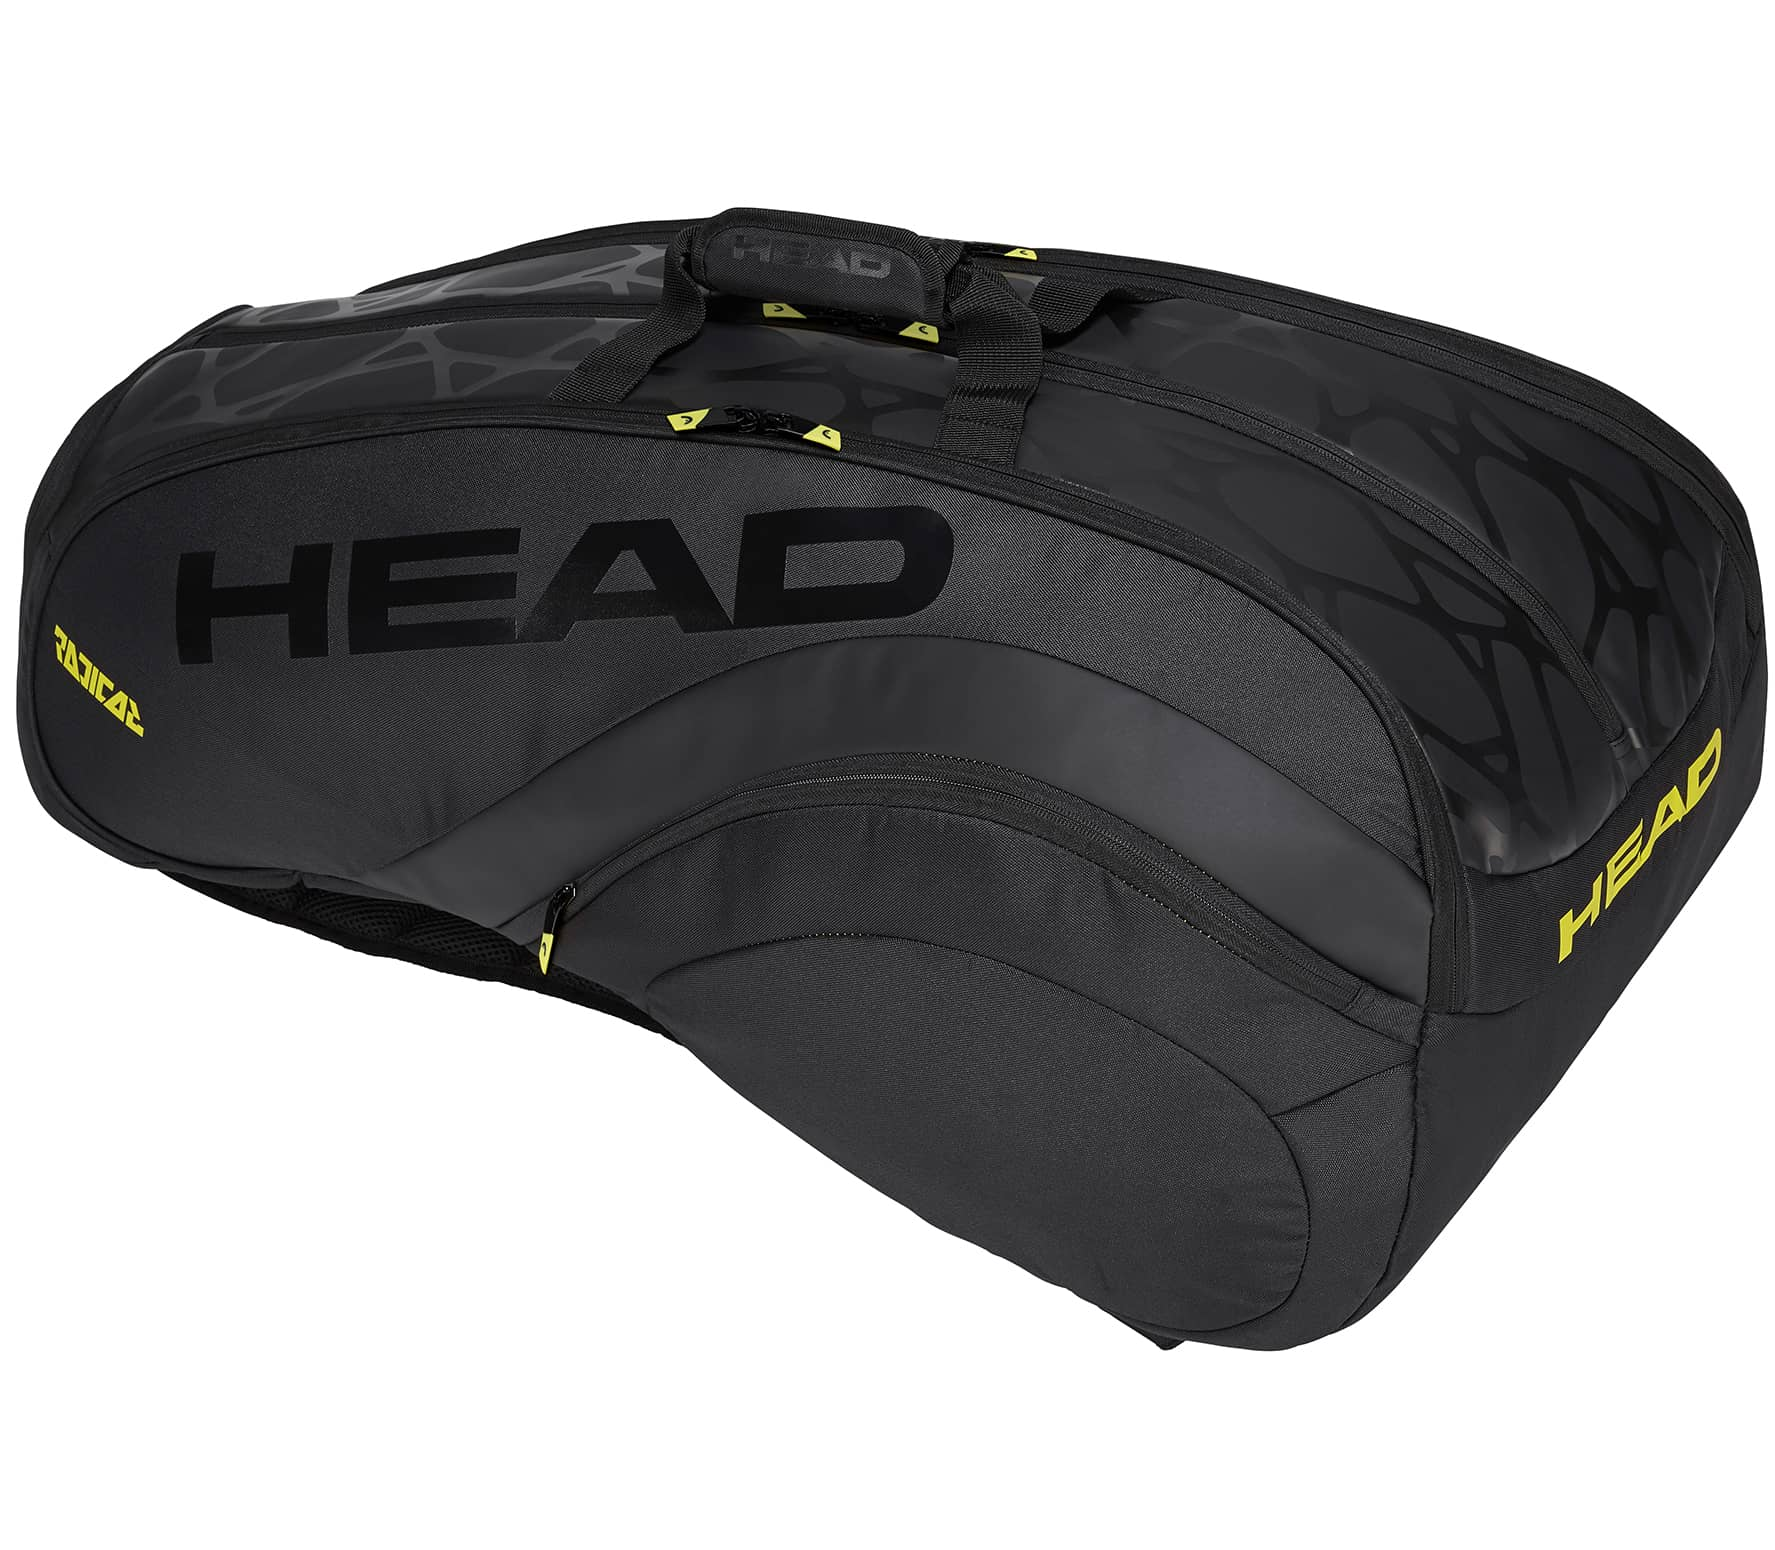 Head - Radical 12R Monstercombi Limited Edition Tennistasche (schwarz)